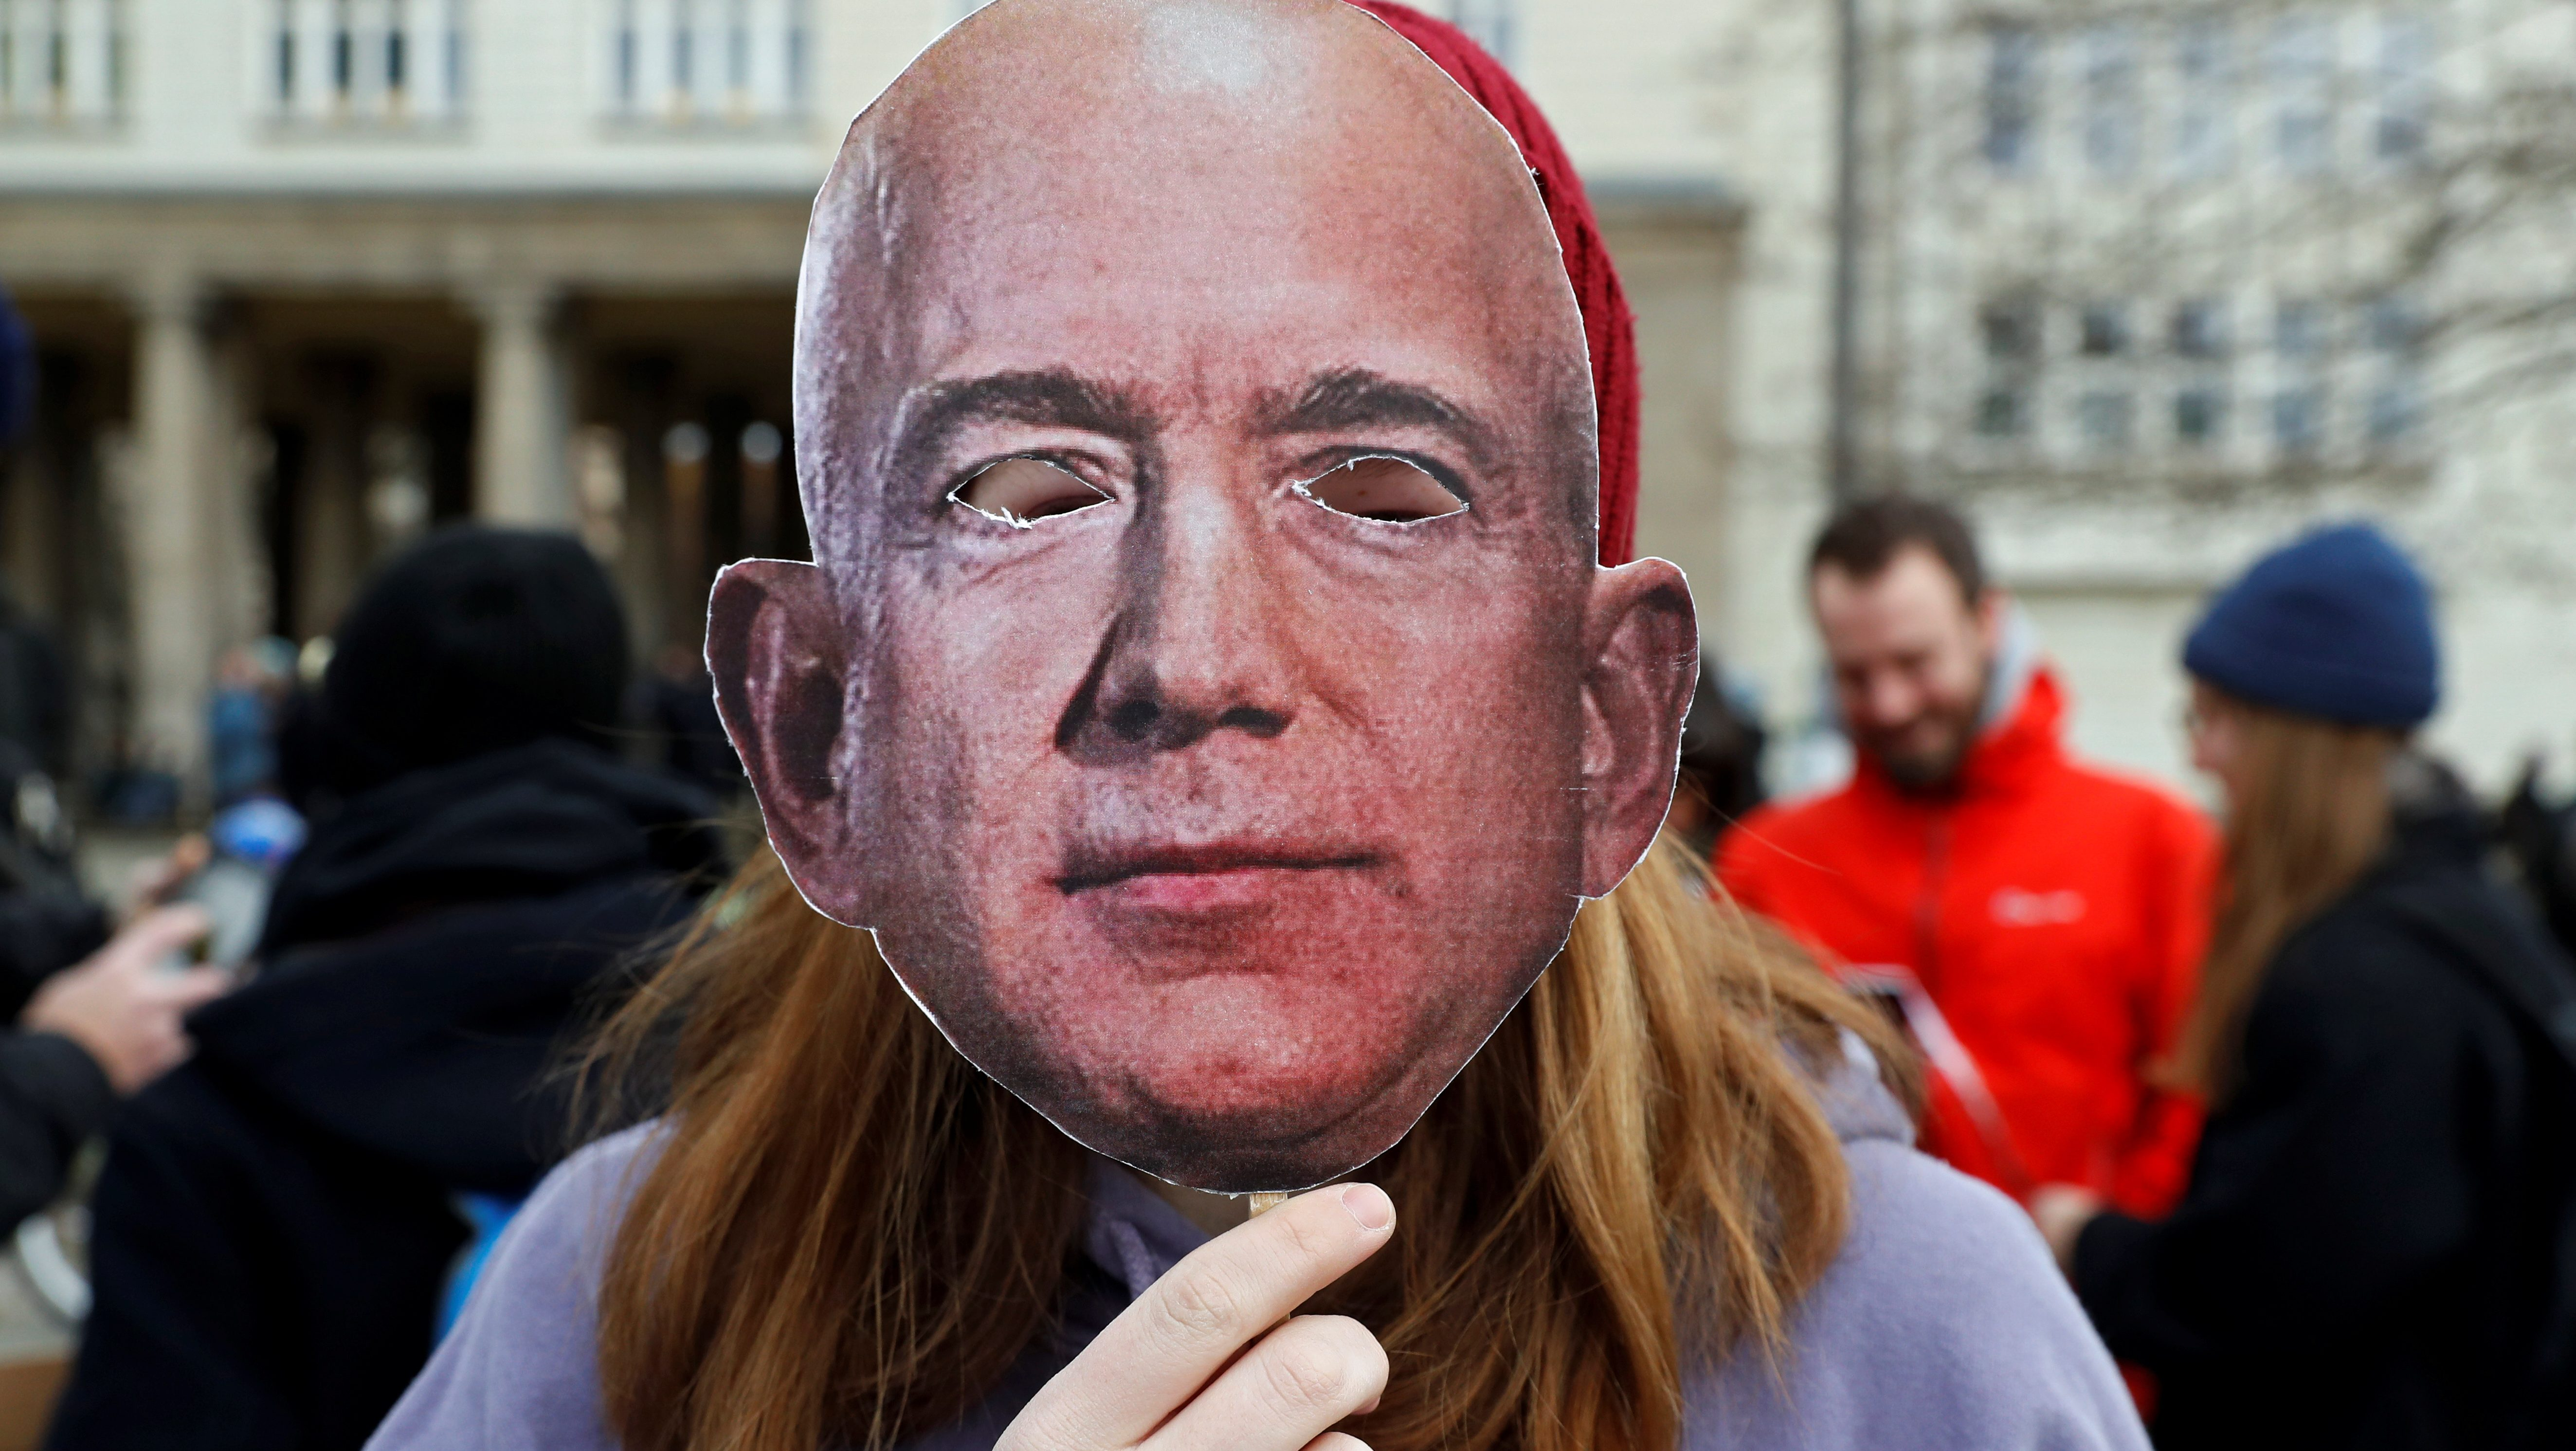 A woman holds up a mask depicting Amazon founder Jeff Bezos, during a protest against the opening of a new Amazon office